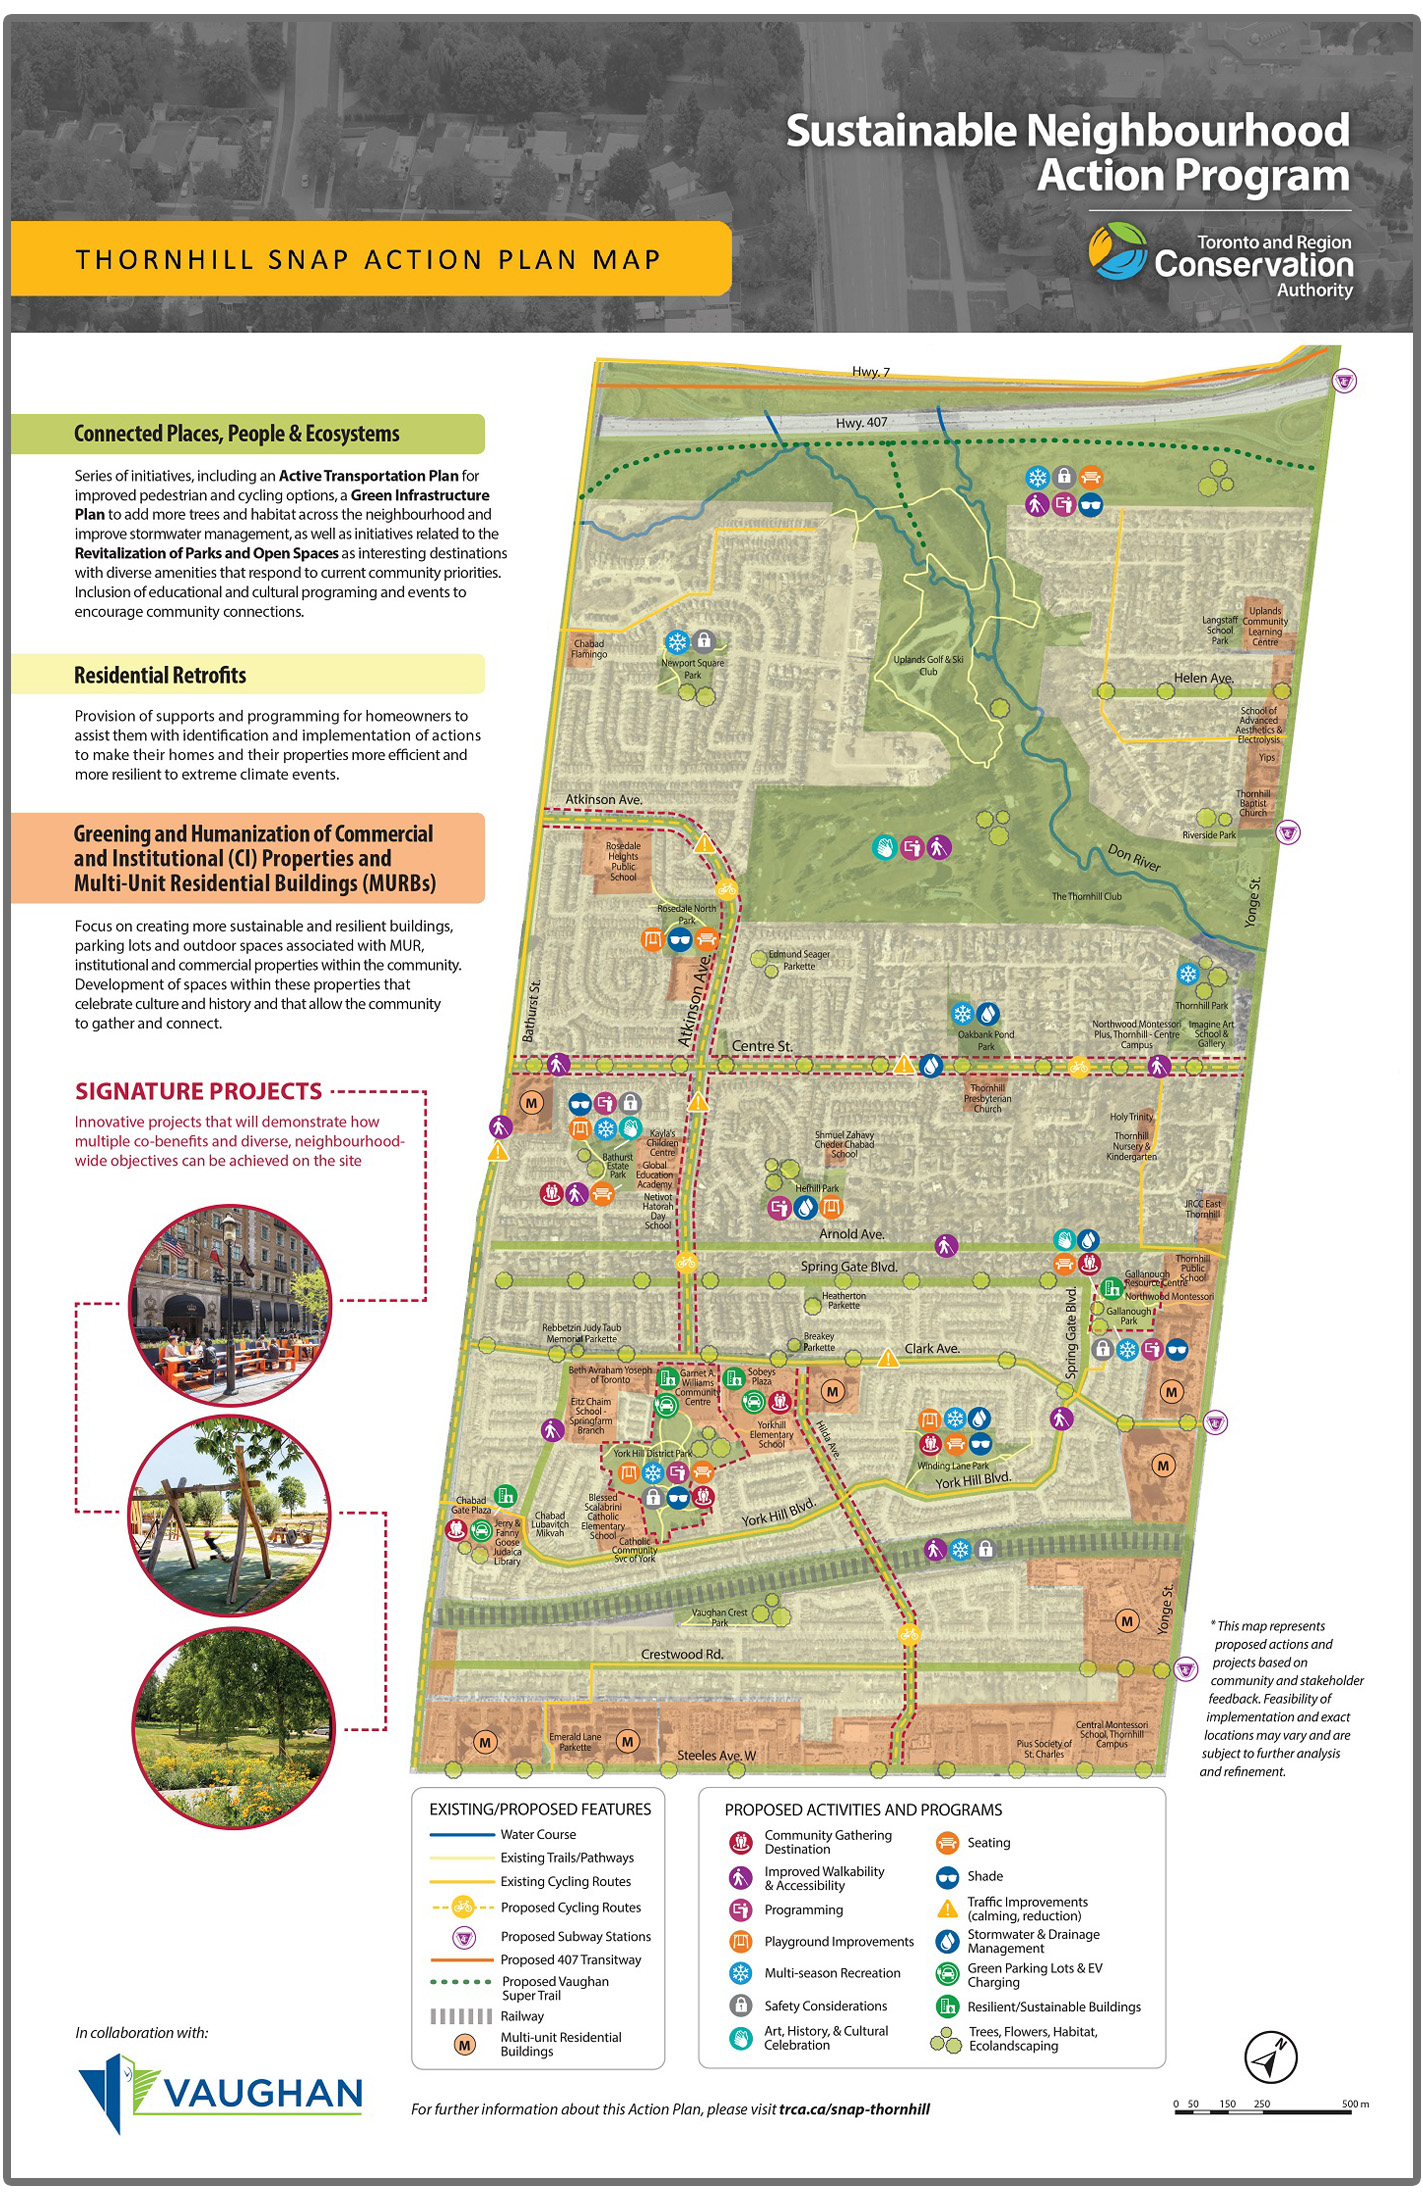 Thornhill SNAP action plan map